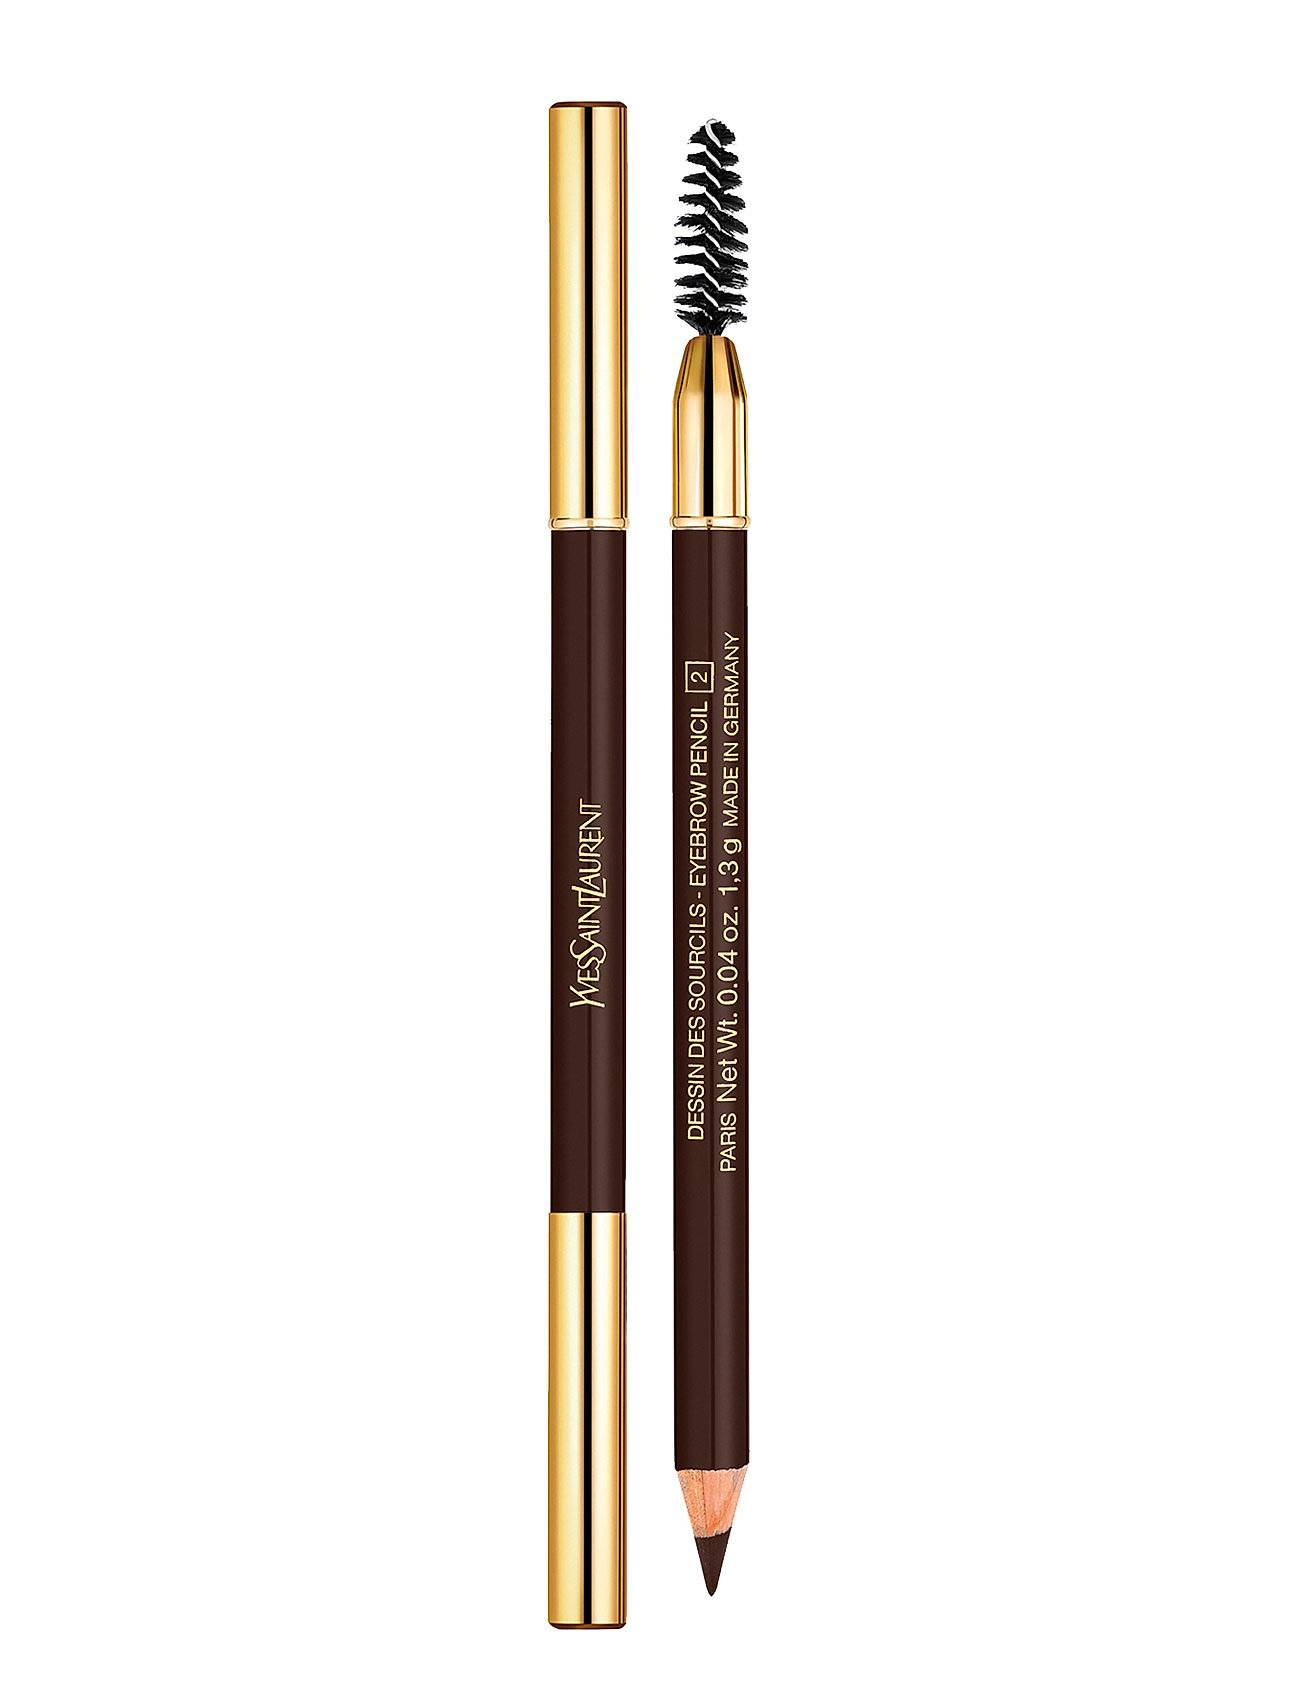 Yves Saint Laurent Dessin Des Sourcils 3 Marron Glacé